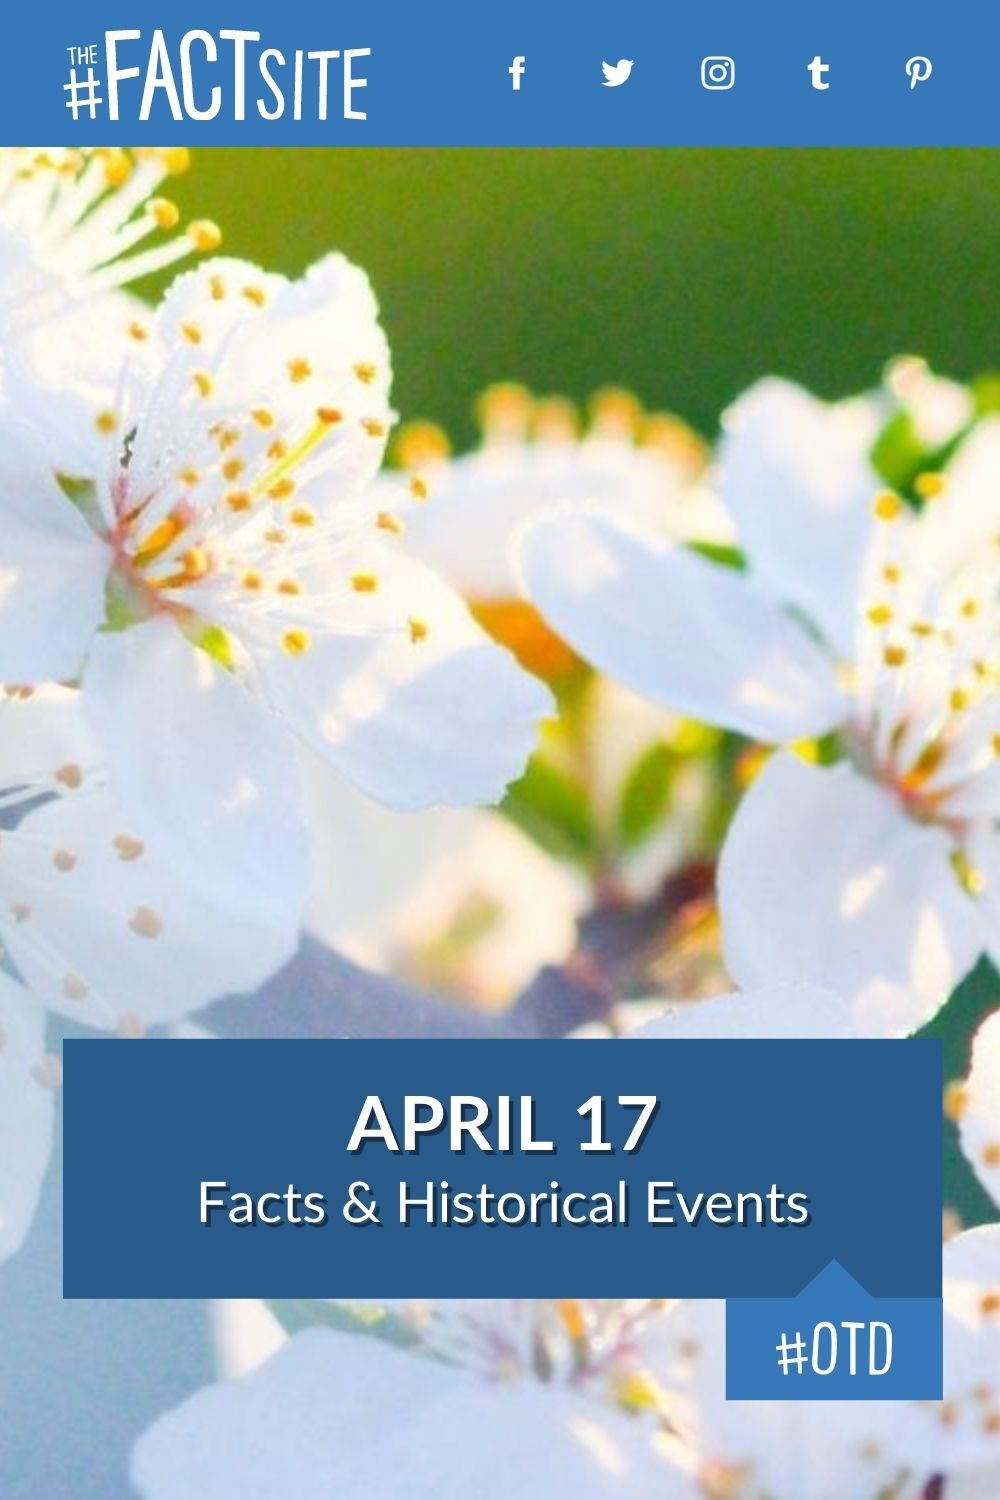 Facts & Historic Events That Happened on April 17